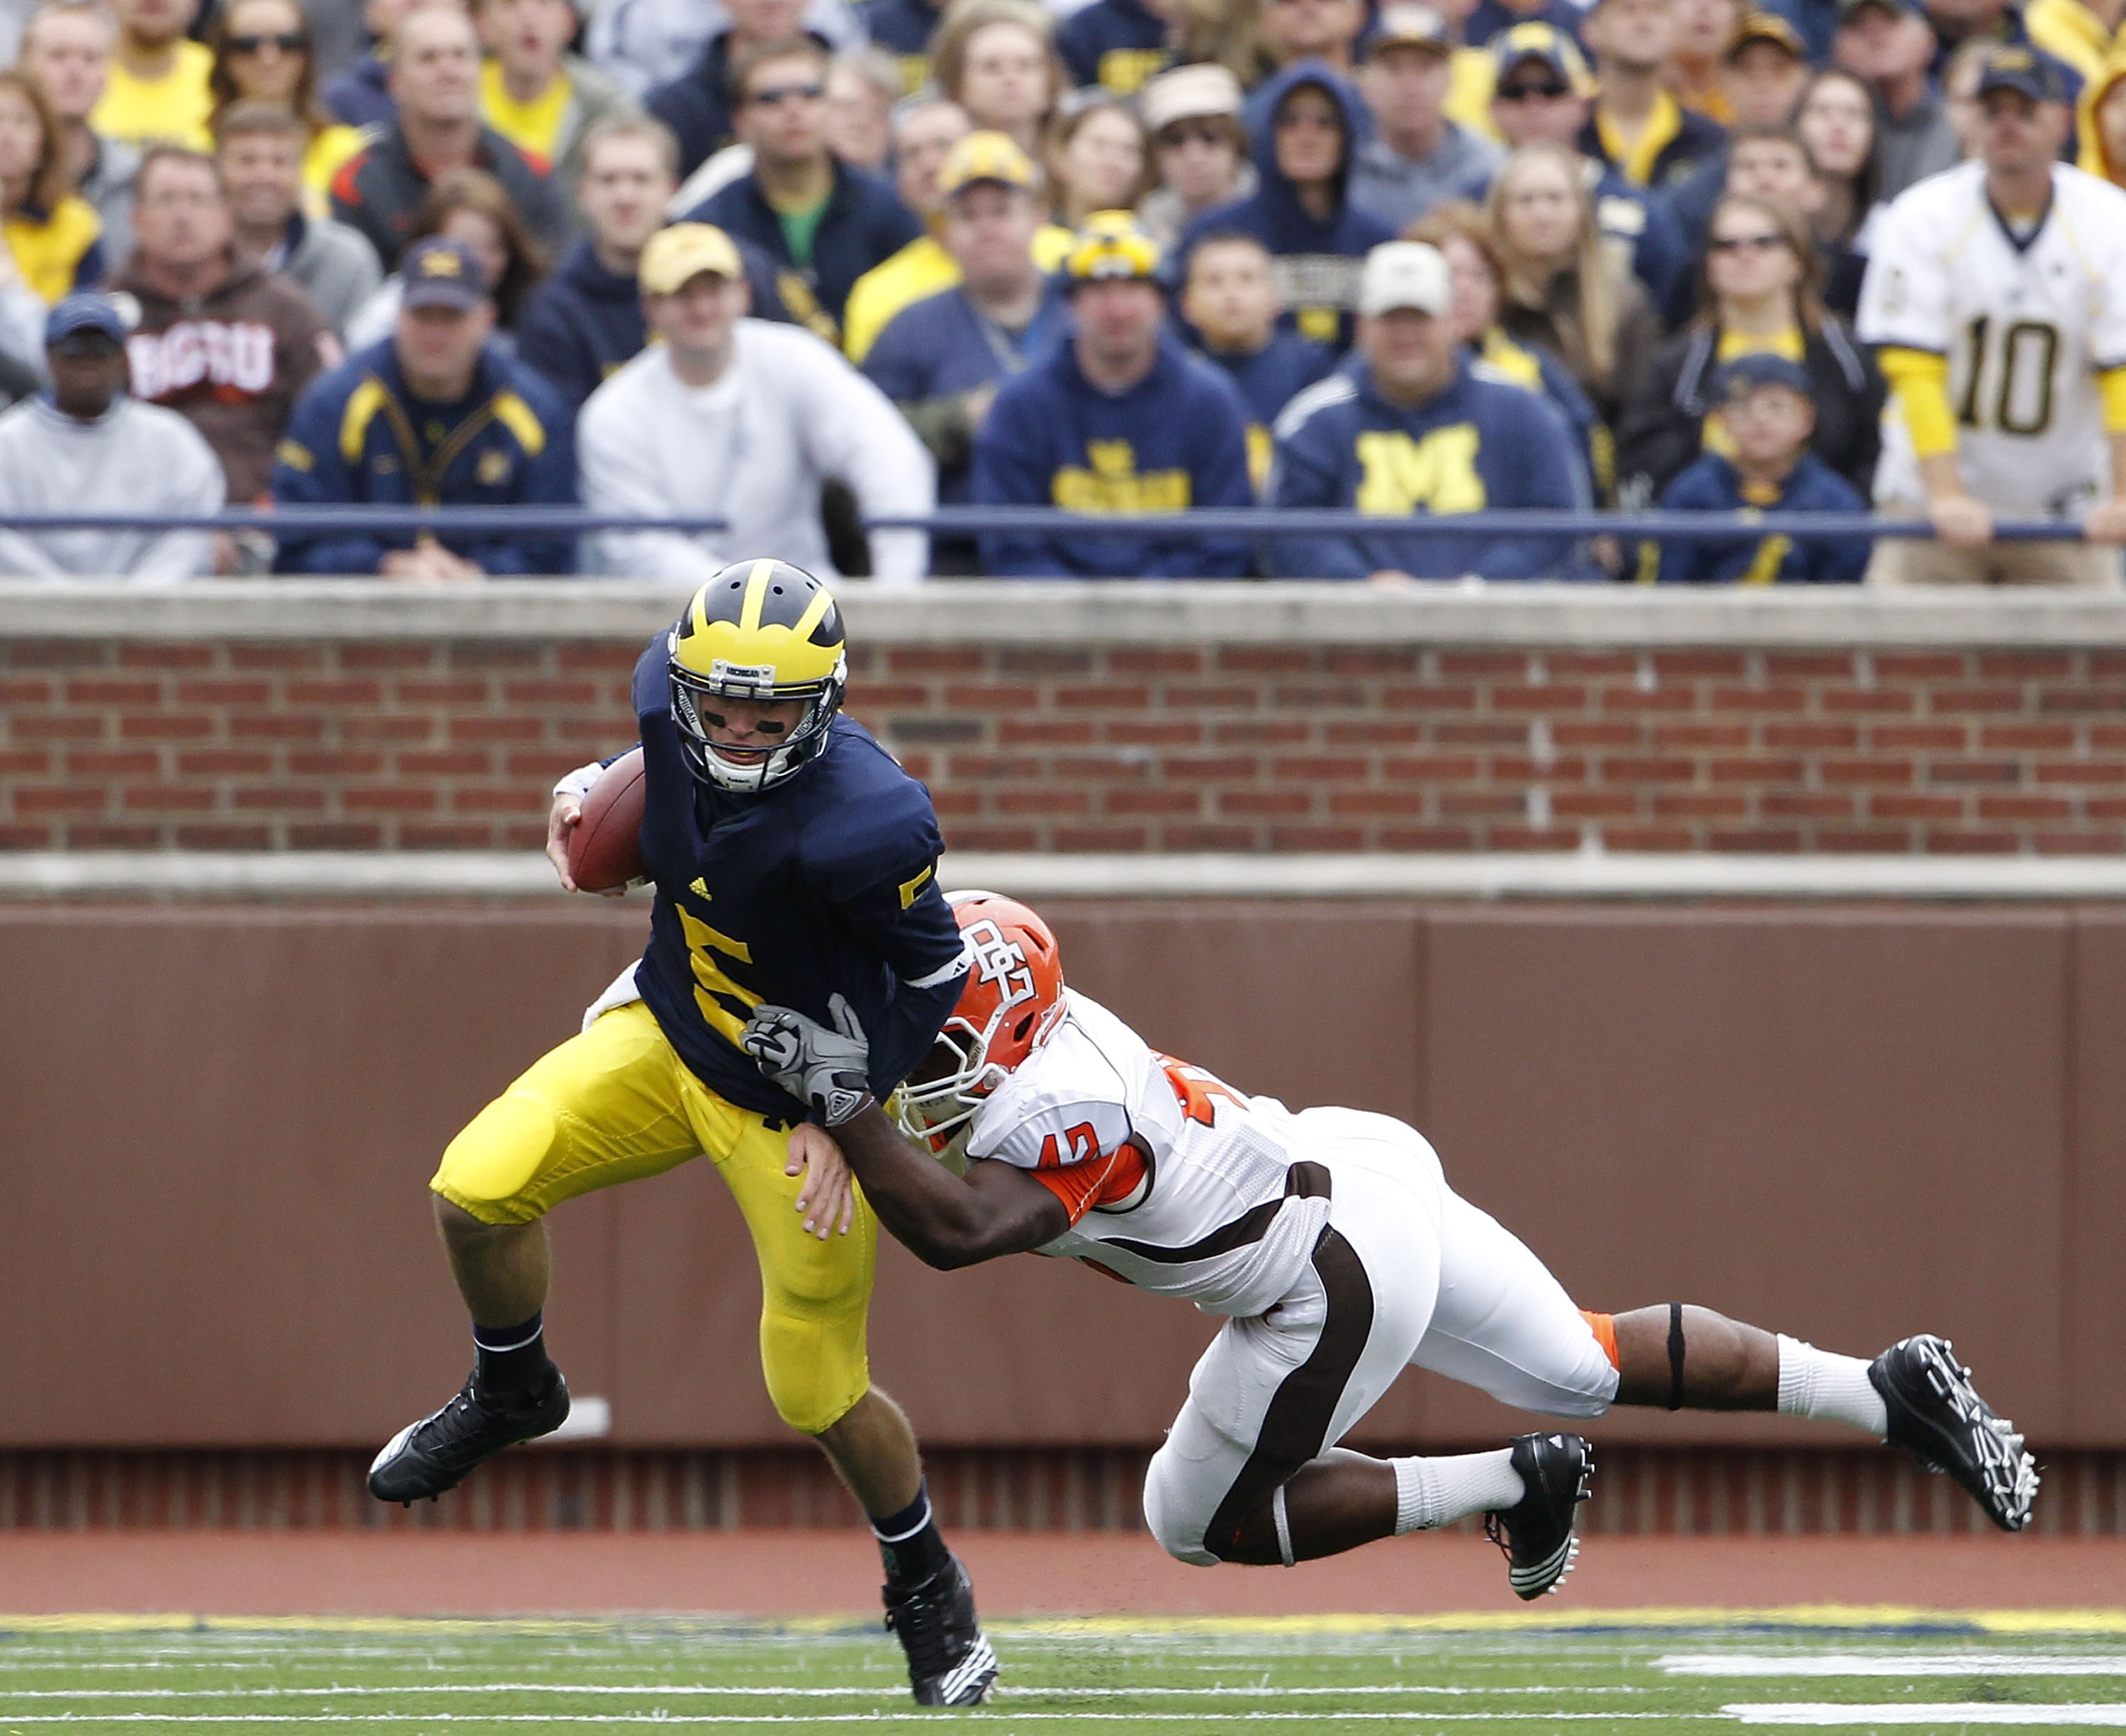 ANN ARBOR, MI - SEPTEMBER 25: Tate Forcier #5 of the Michigan Wolverines runs for a short gain as Eugene Fells #42 of Bowling Green makes the stop on September 25, 2010 at Michigan Stadium in Ann Arbor, Michigan. Michigan defeated Bowling Green 65-21.  (P